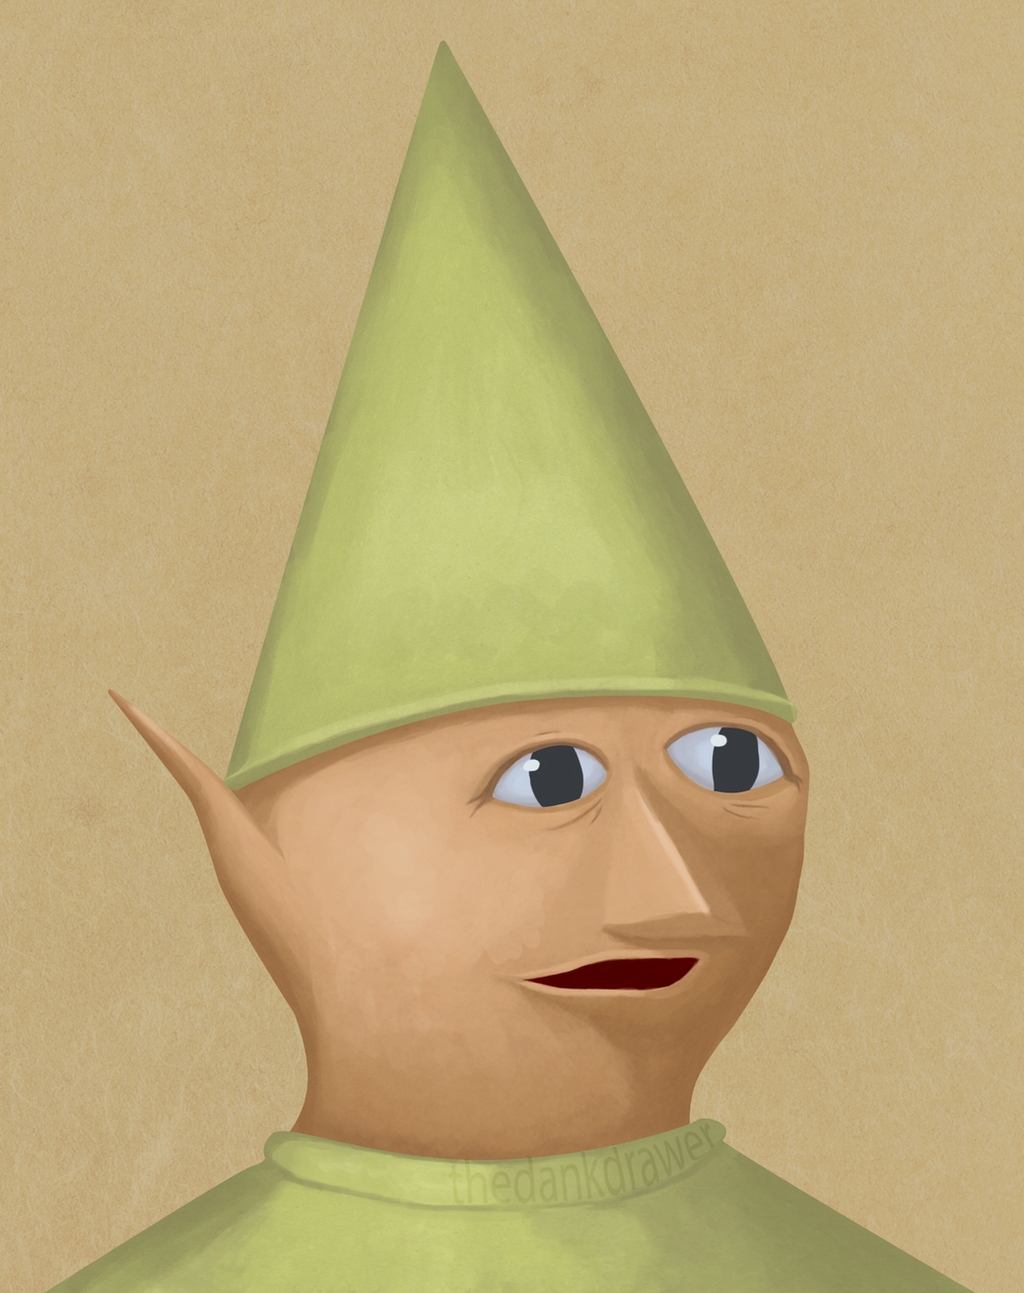 gnome_child_by_thedankdrawer d8wp2sg gnome child by thedankdrawer on deviantart